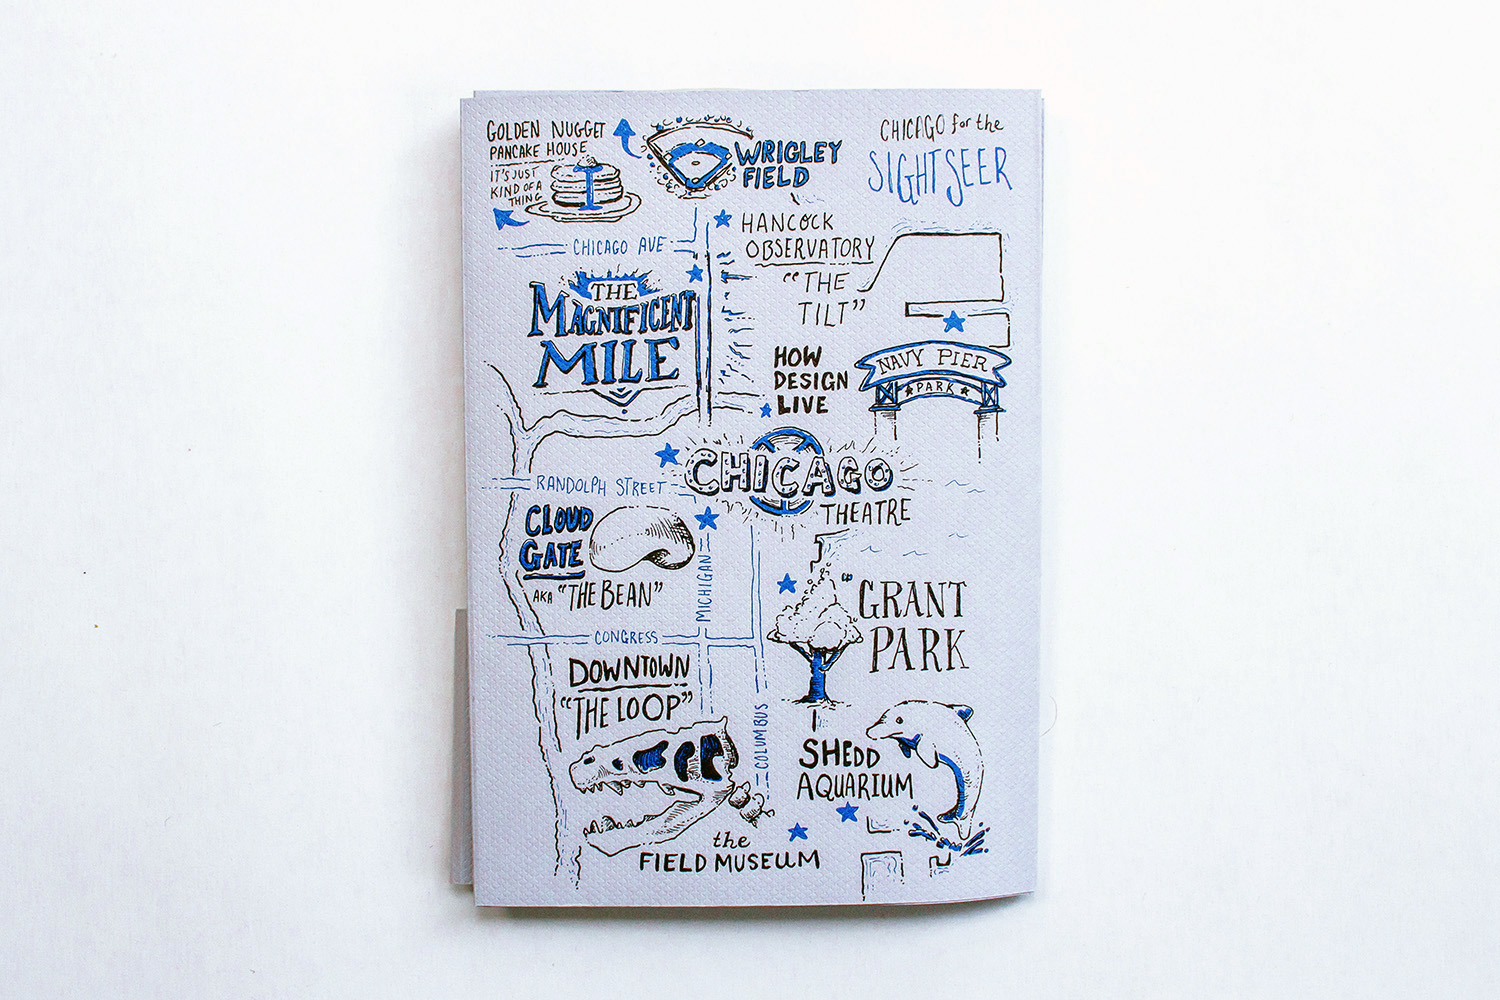 Hand drawn illustrated map of Chicago for the Sightseer at HOW Design live conference, showing Golden Nugget Pancake House, Wrigley field, hancock observatory, the magnificent mile, navy pier, grant park, chicago theater, cloud gate, downtown, the field museum, shedd aquarium.